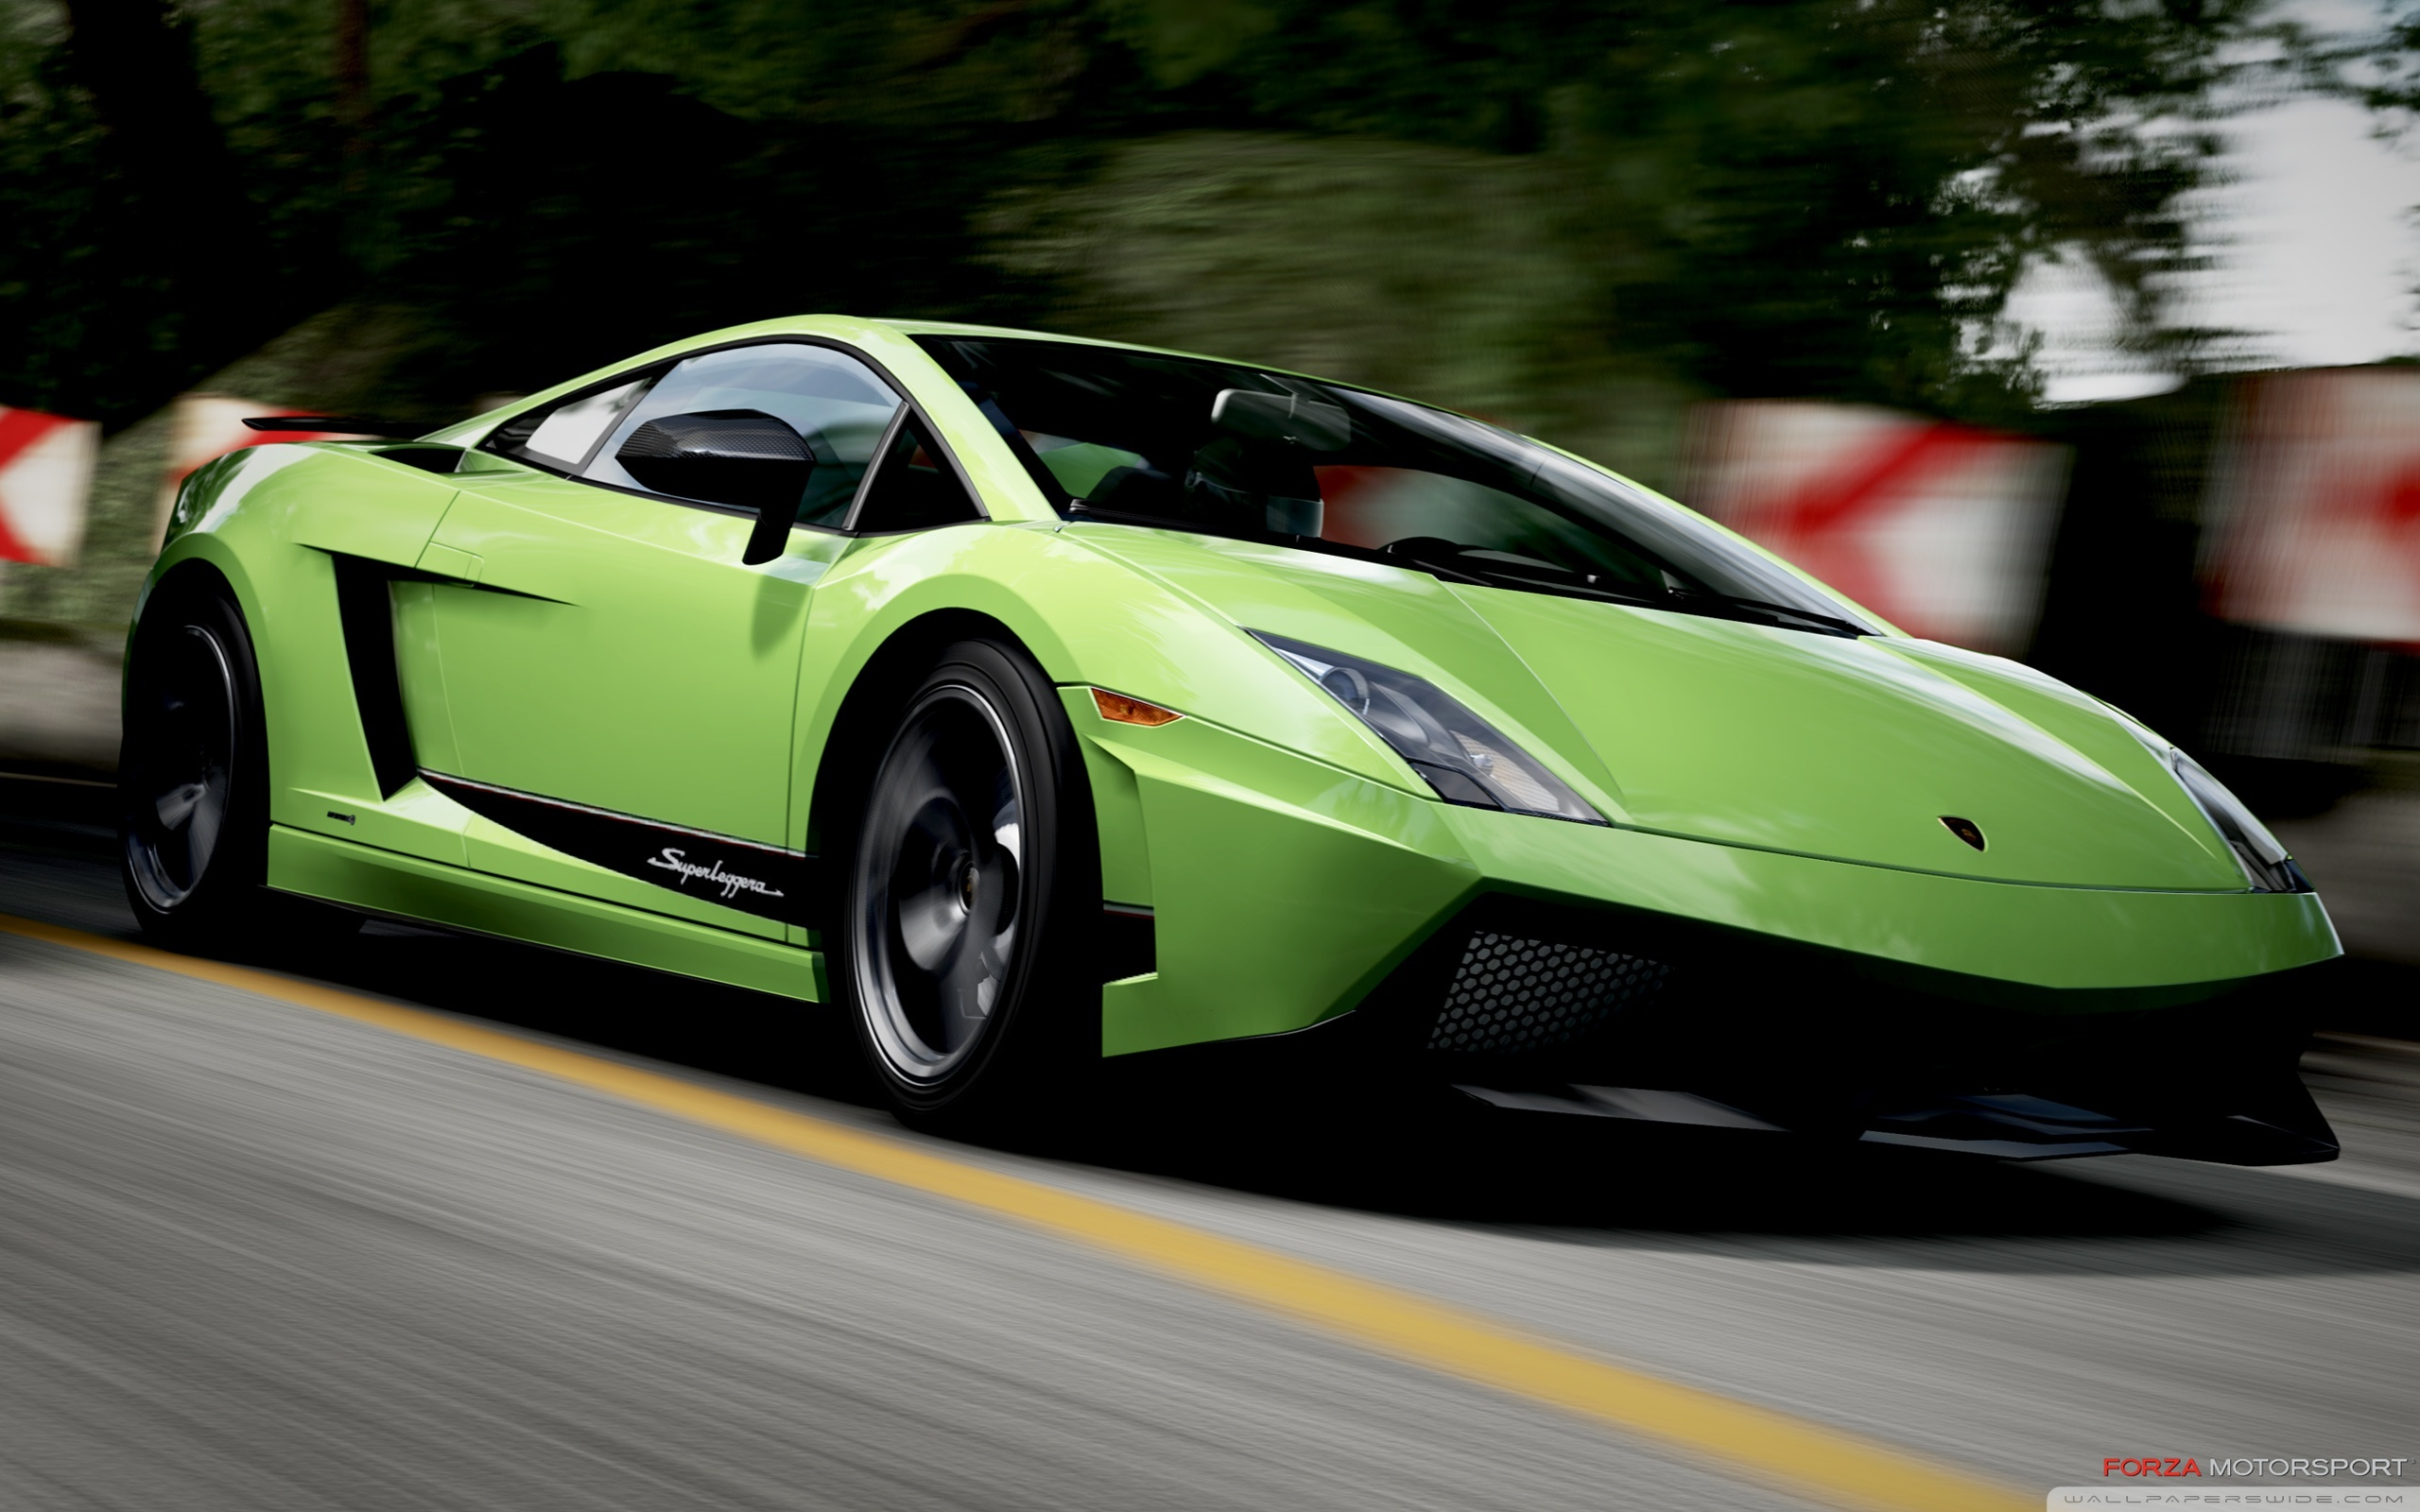 Download Free WallpaperLamborghini Gallardo   Forza Motorsport